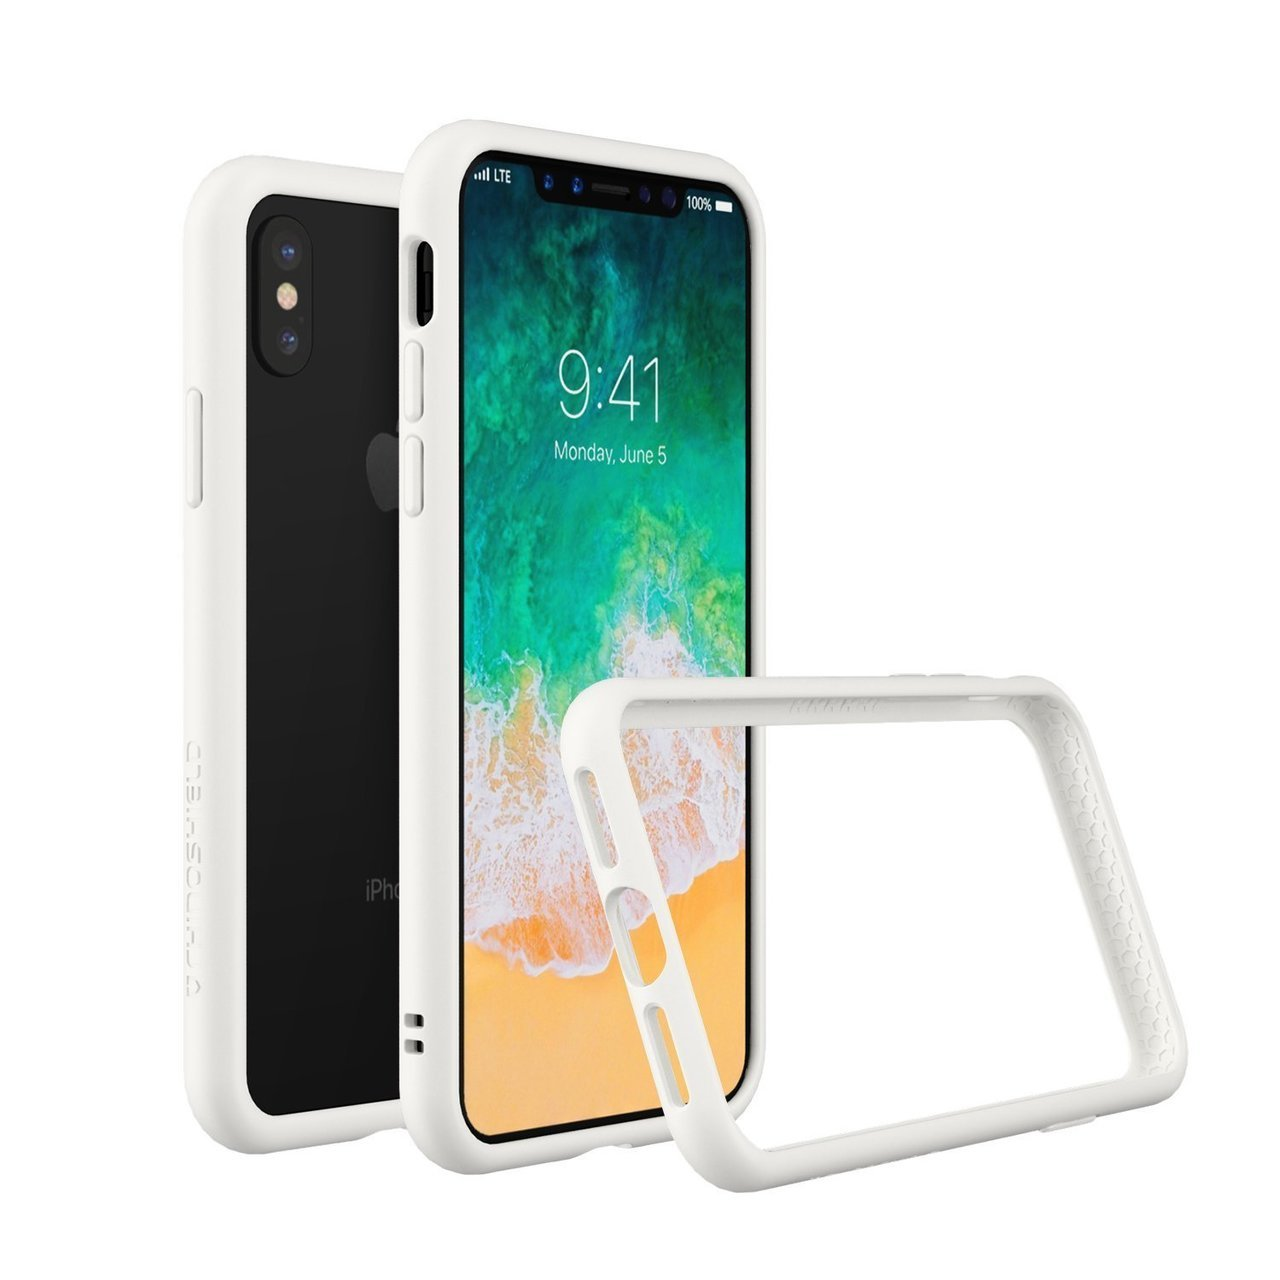 RhinoShield Apple iPhone X CrashGuard Bumper Case - White